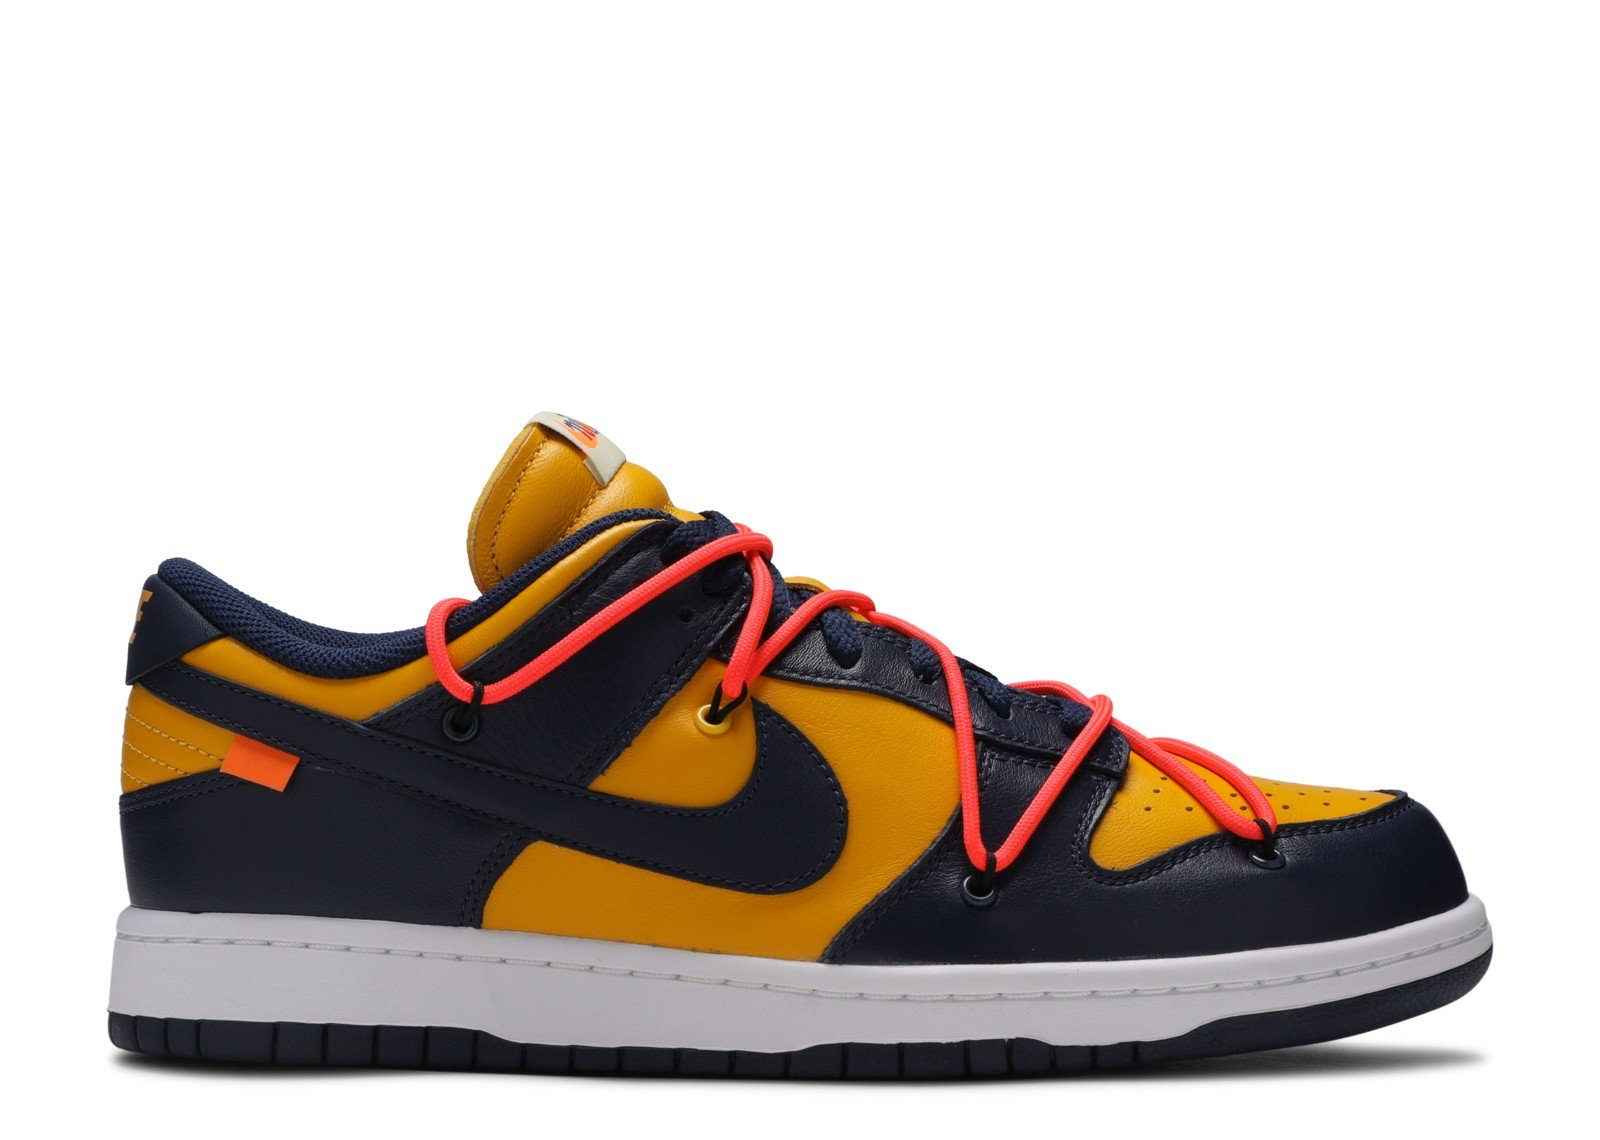 Nike Dunk Low Off-White University Gold Midnight Navy - CookiesandKicksLA